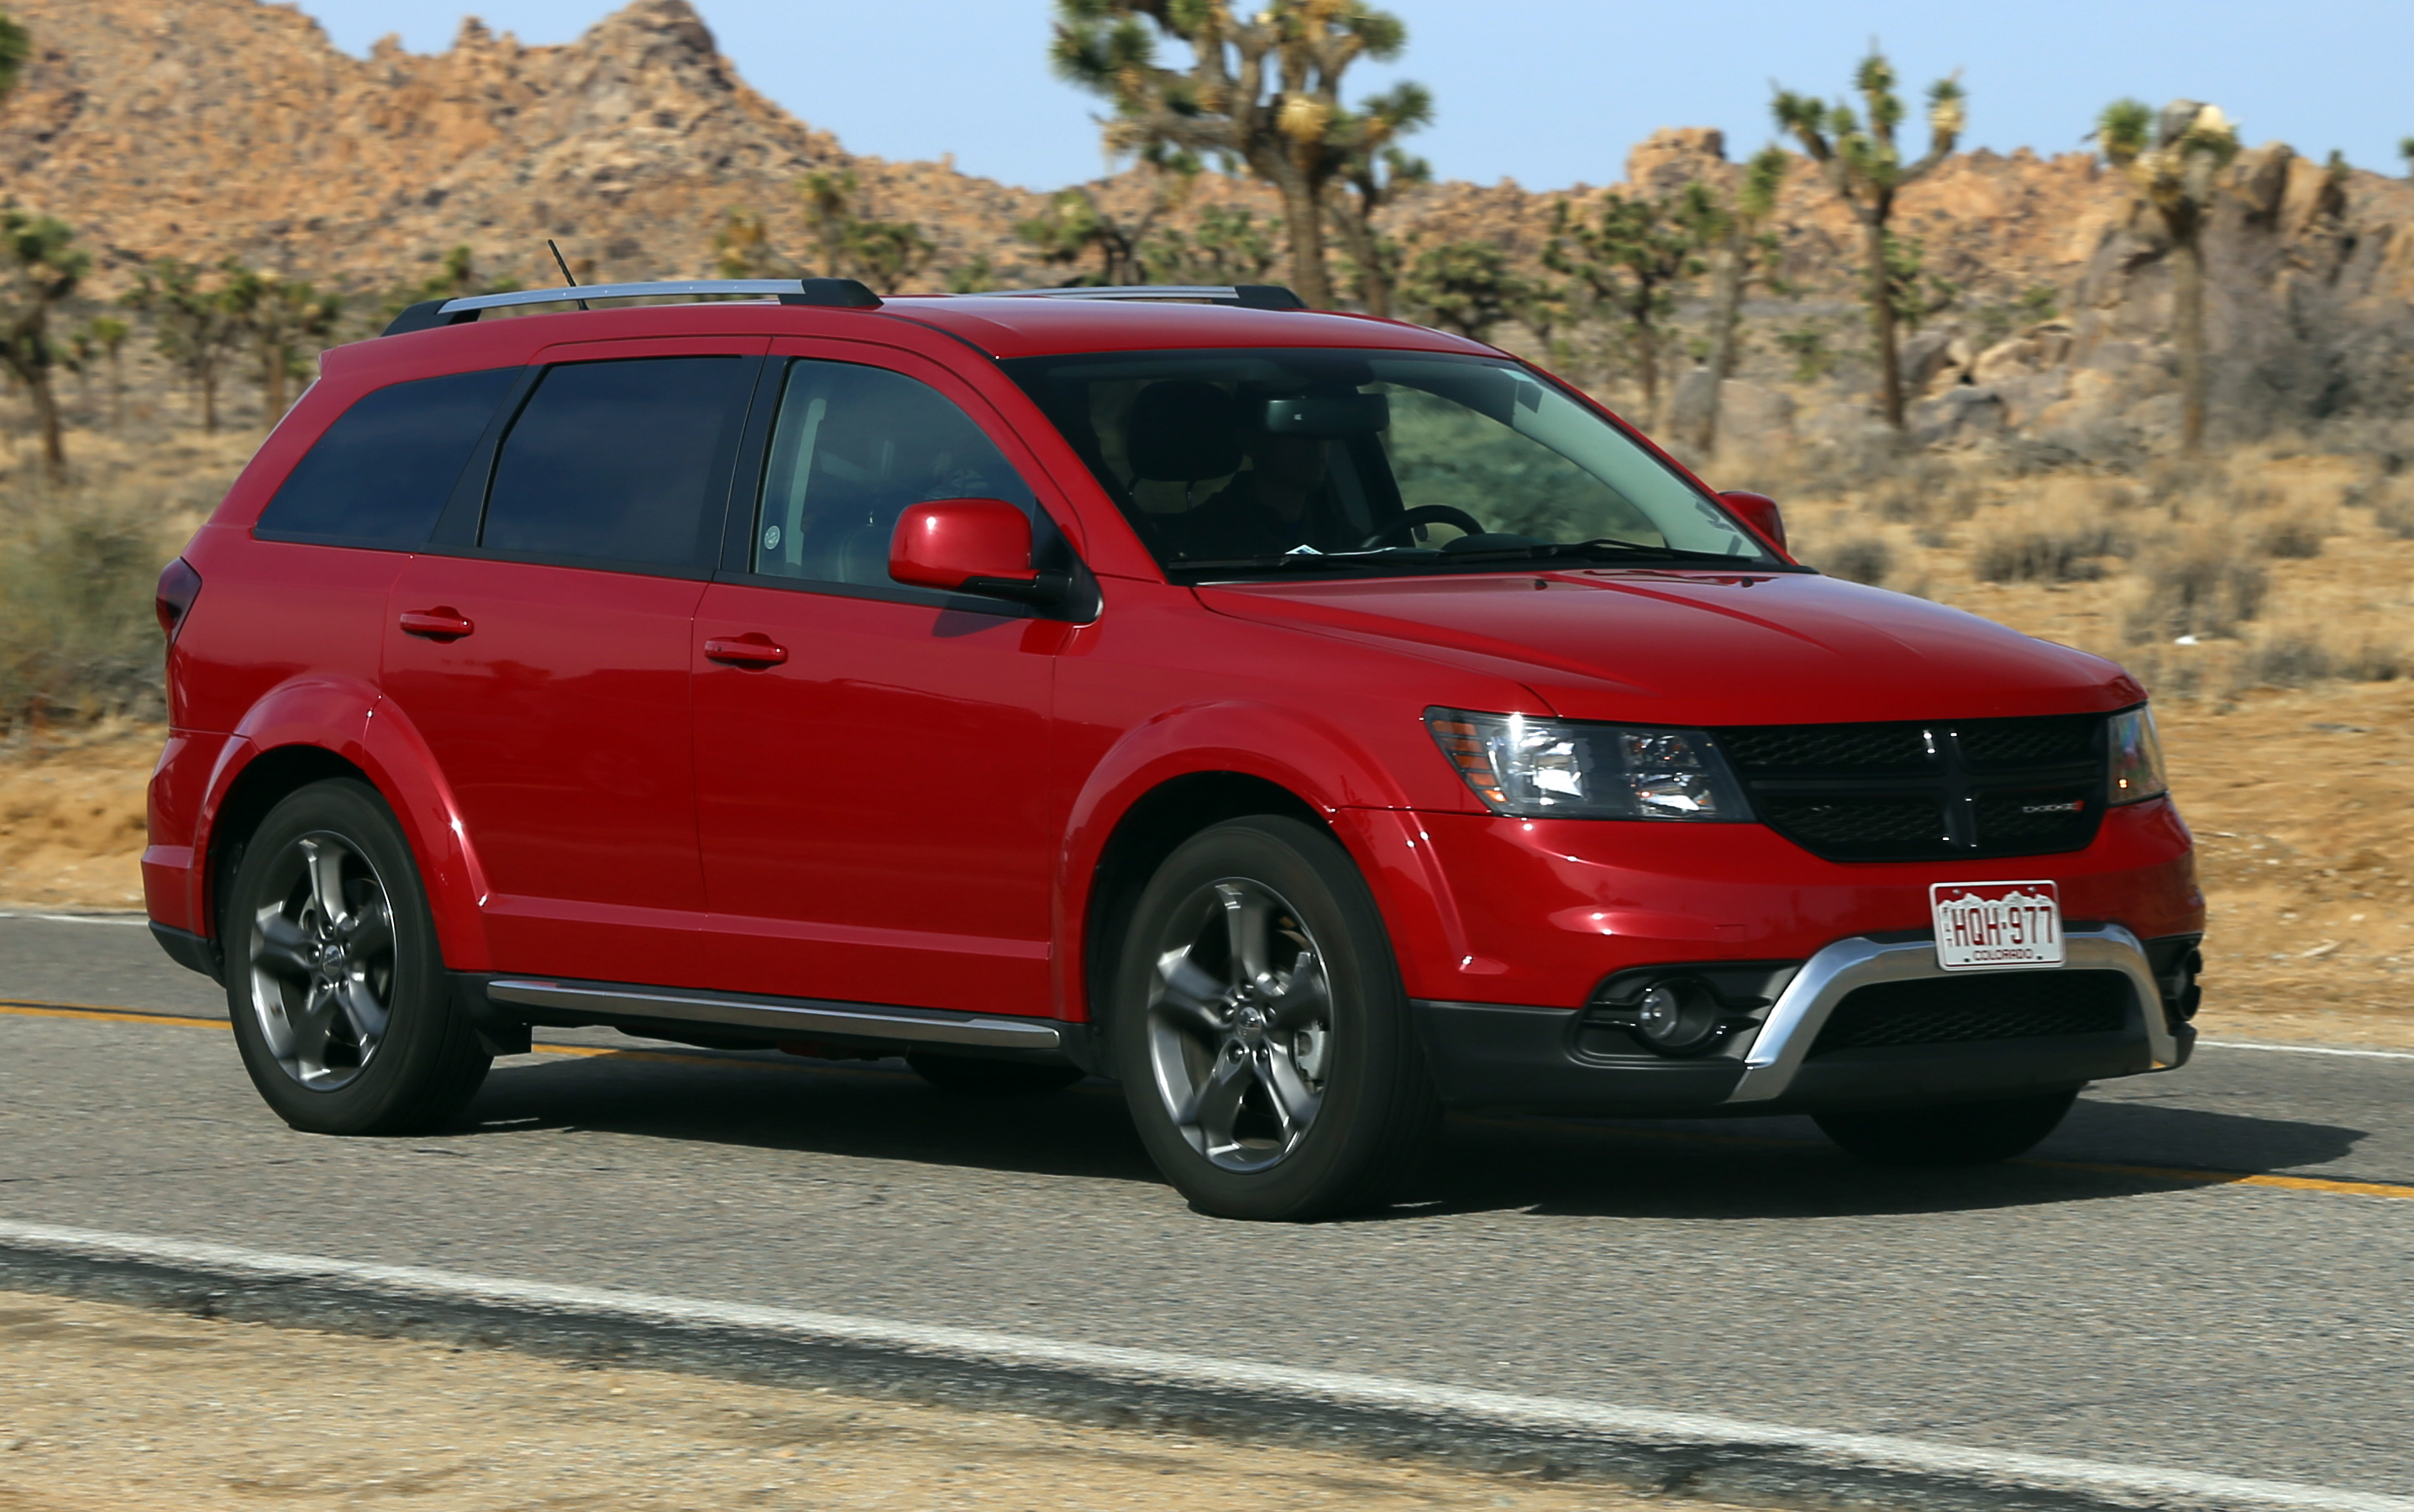 28 New 2020 Dodge Journey Srt Prices